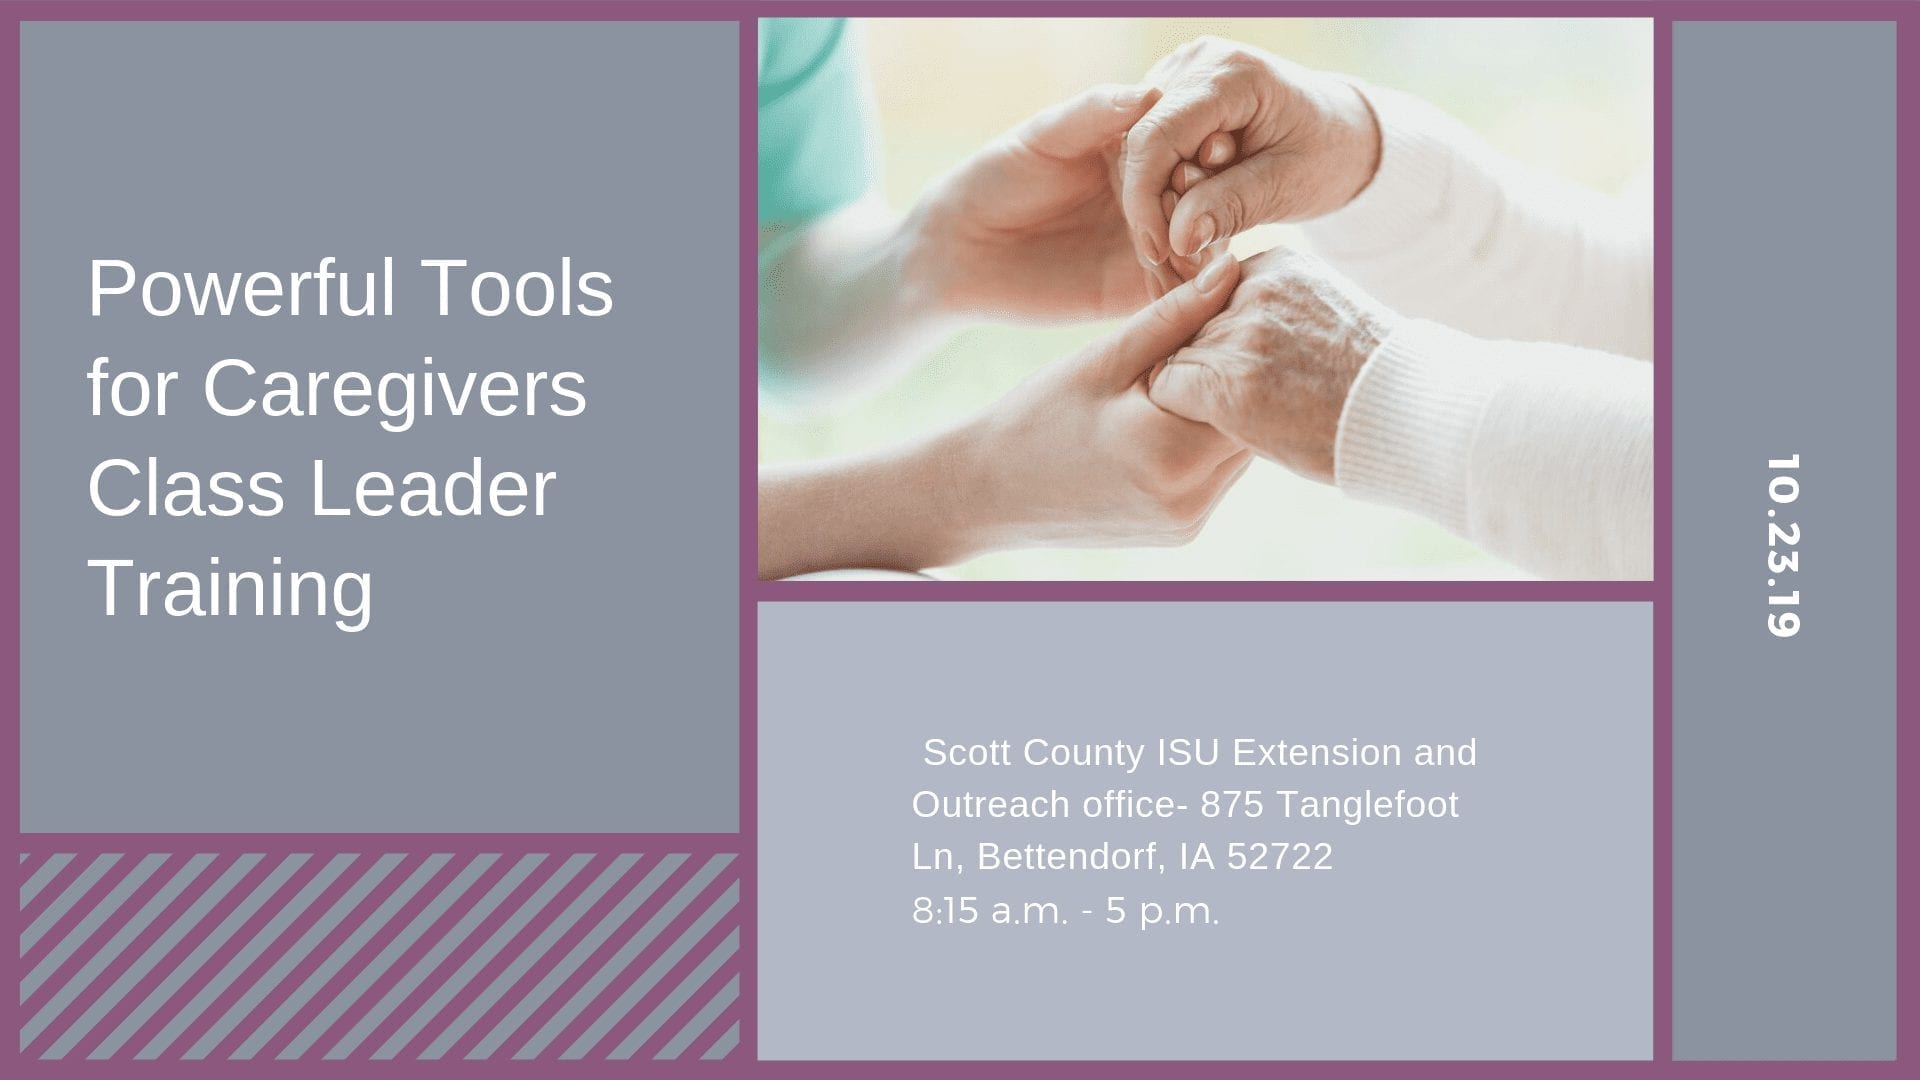 Powerful Tools for Caregivers Class Leader Training